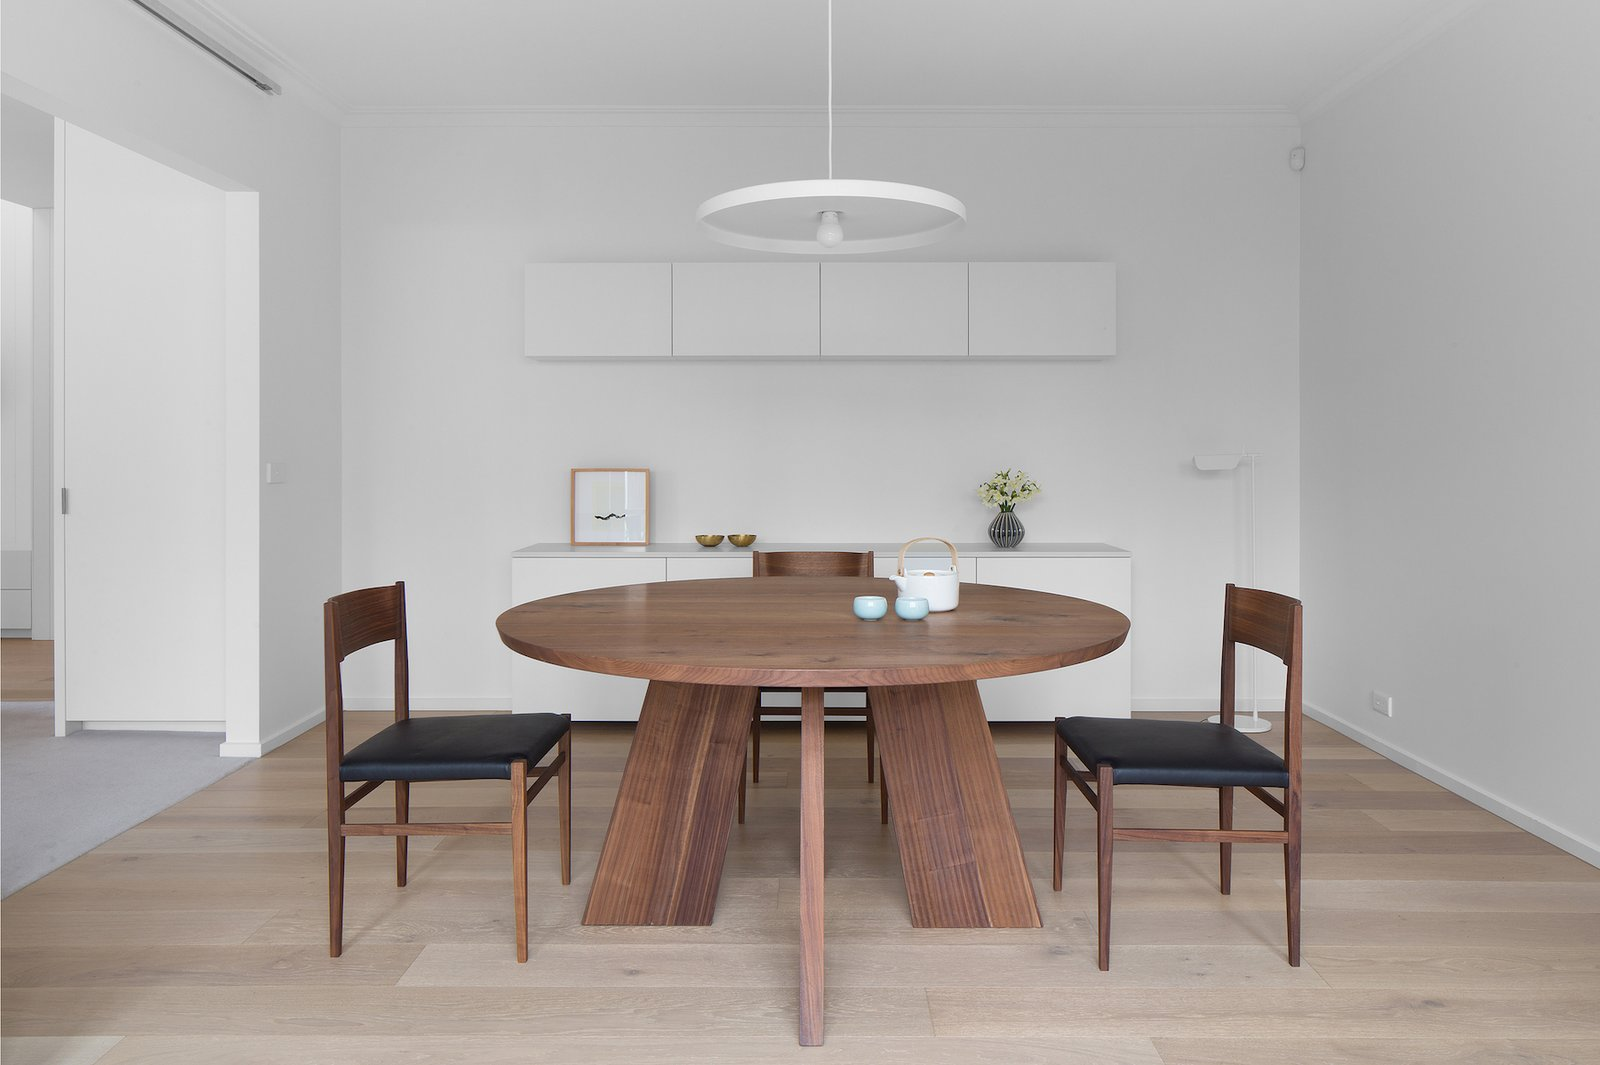 Dining Room, Chair, Table, Pendant Lighting, and Light Hardwood Floor  Corhampton Rd Residence